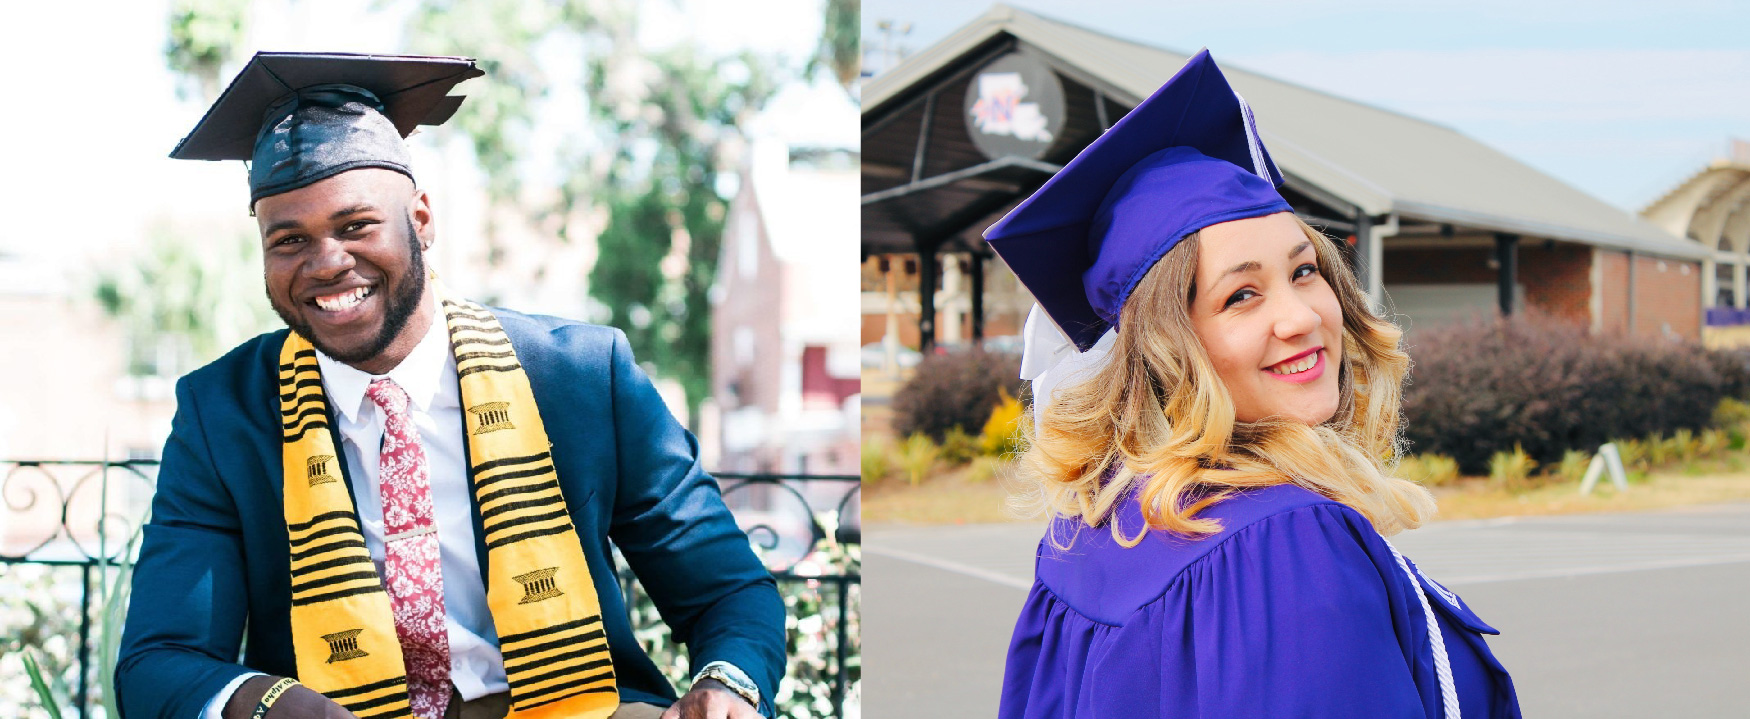 The photo on the left shows an African male student in academic dress sitting outdoors and smiling at the camera. The outdoor photo on the right shows a Caucasian female student smiling at the camera.